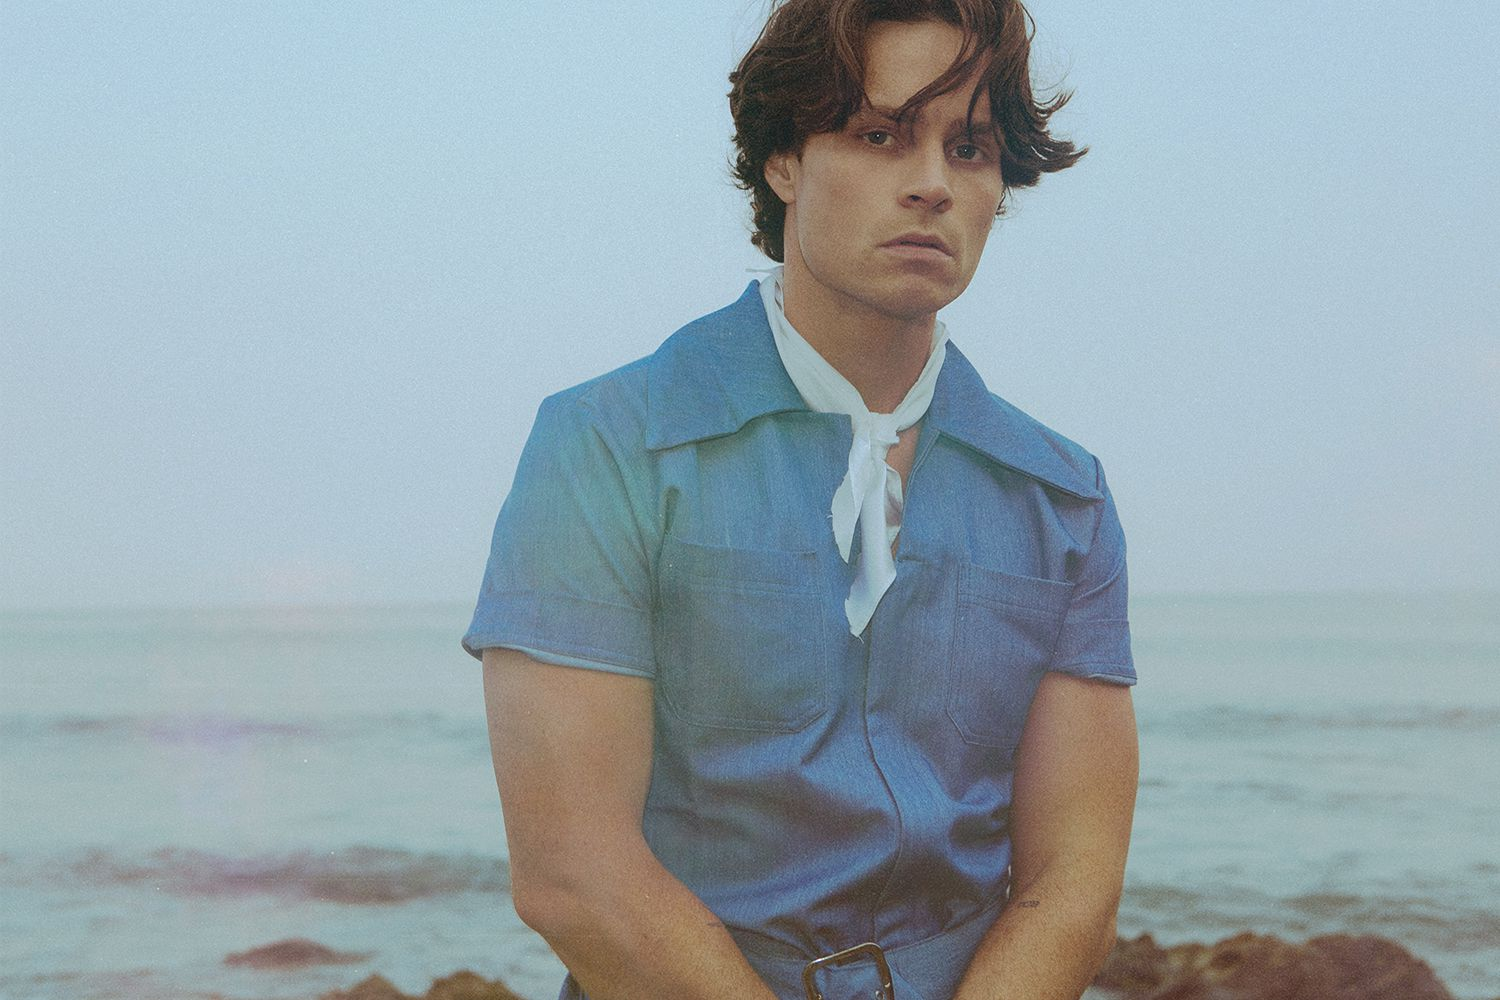 CHECK THE EXCITING NEW RELEASE 'WONDER' FROM SOULFUL ALT POP SINGER SONGWRITER SPENCER SUTHERLAND!